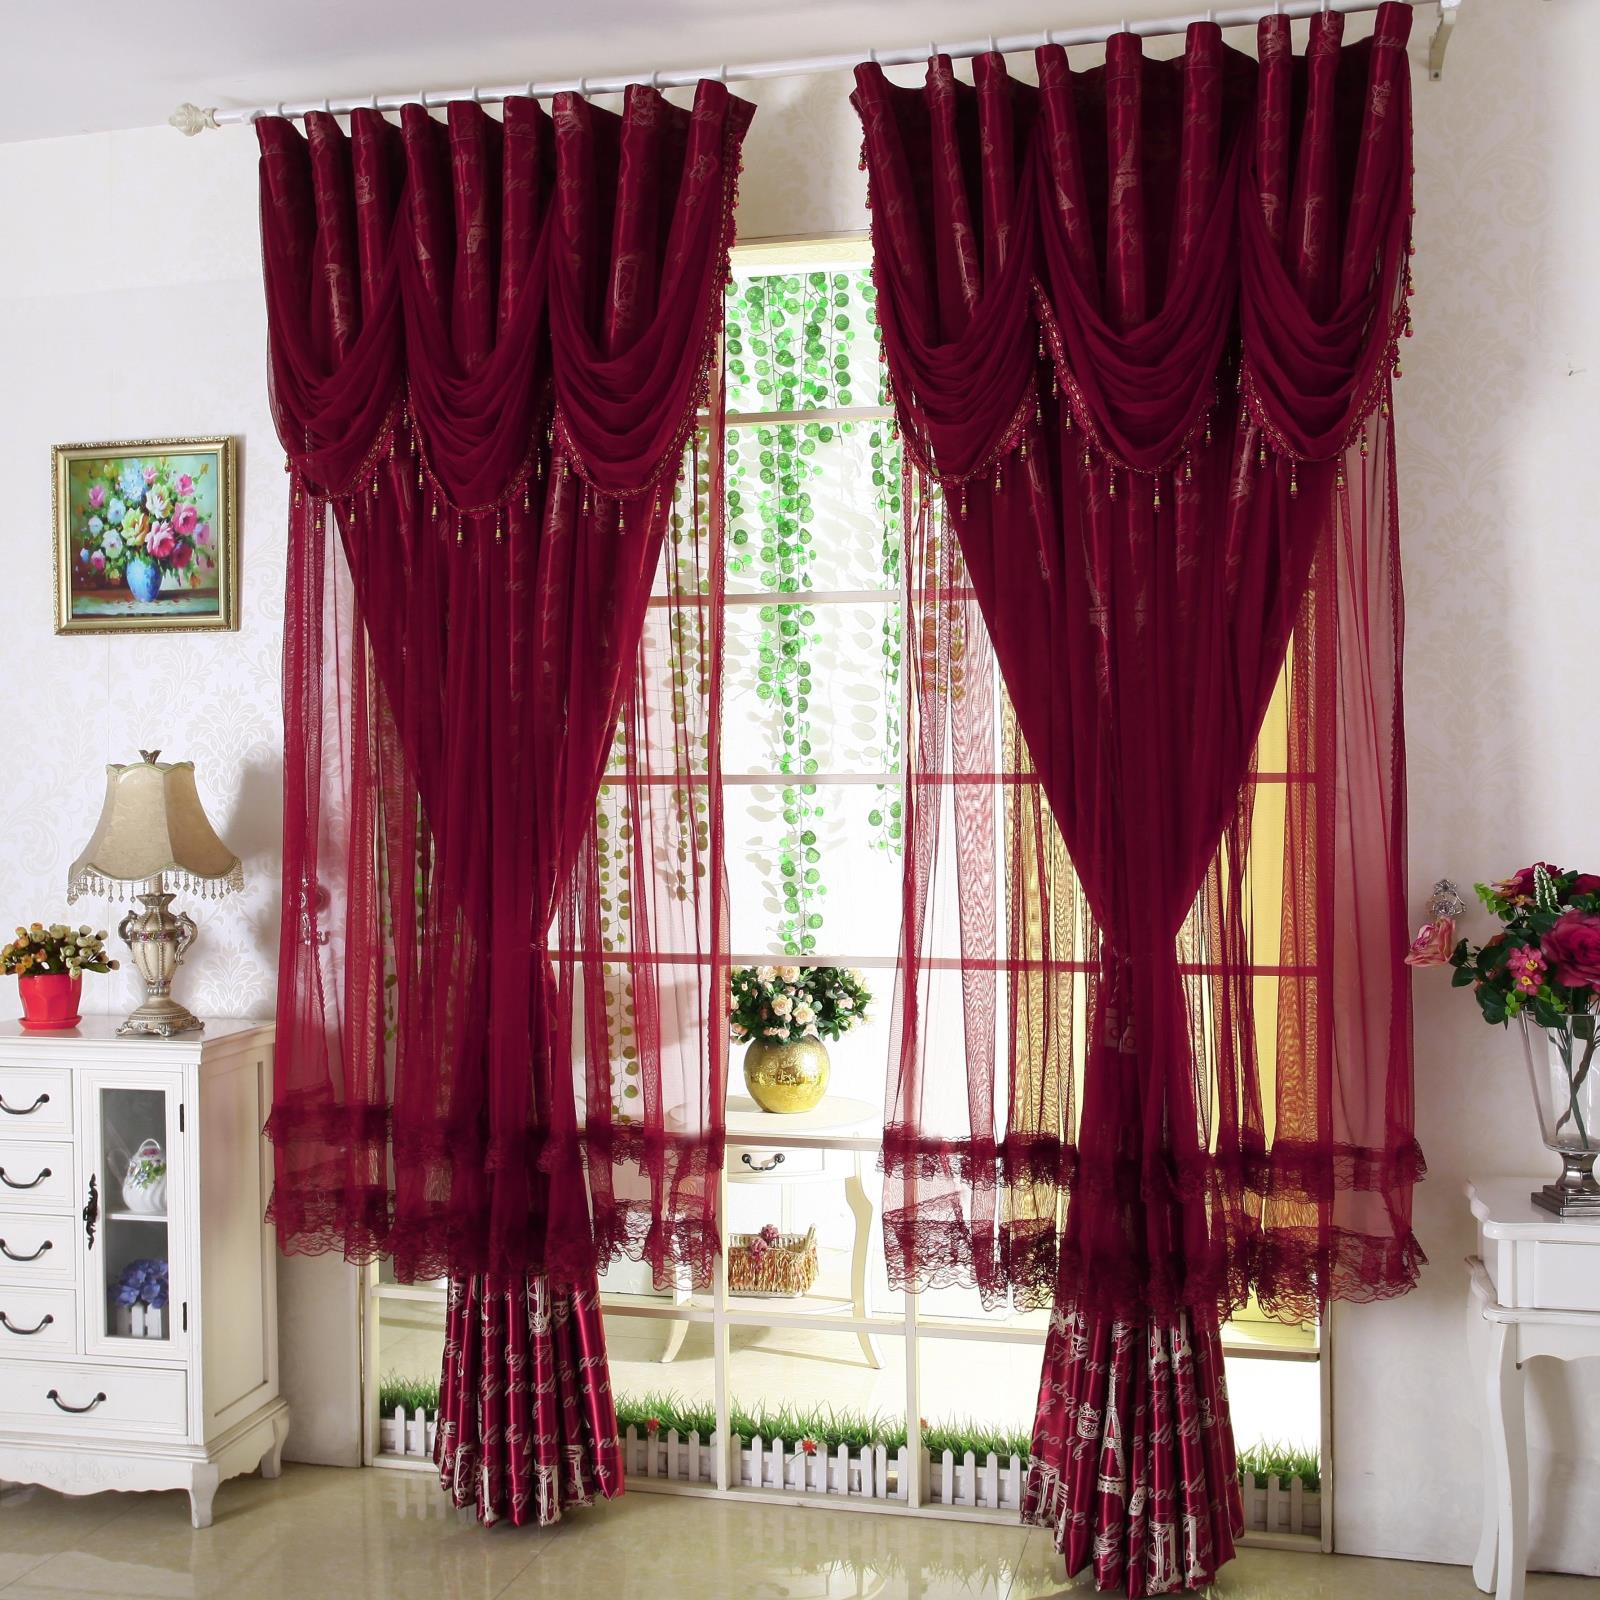 New korean lace curtains red purple blue finished curtains european shade curtains for bedroom and living room 2 panels pair in curtains from home garden